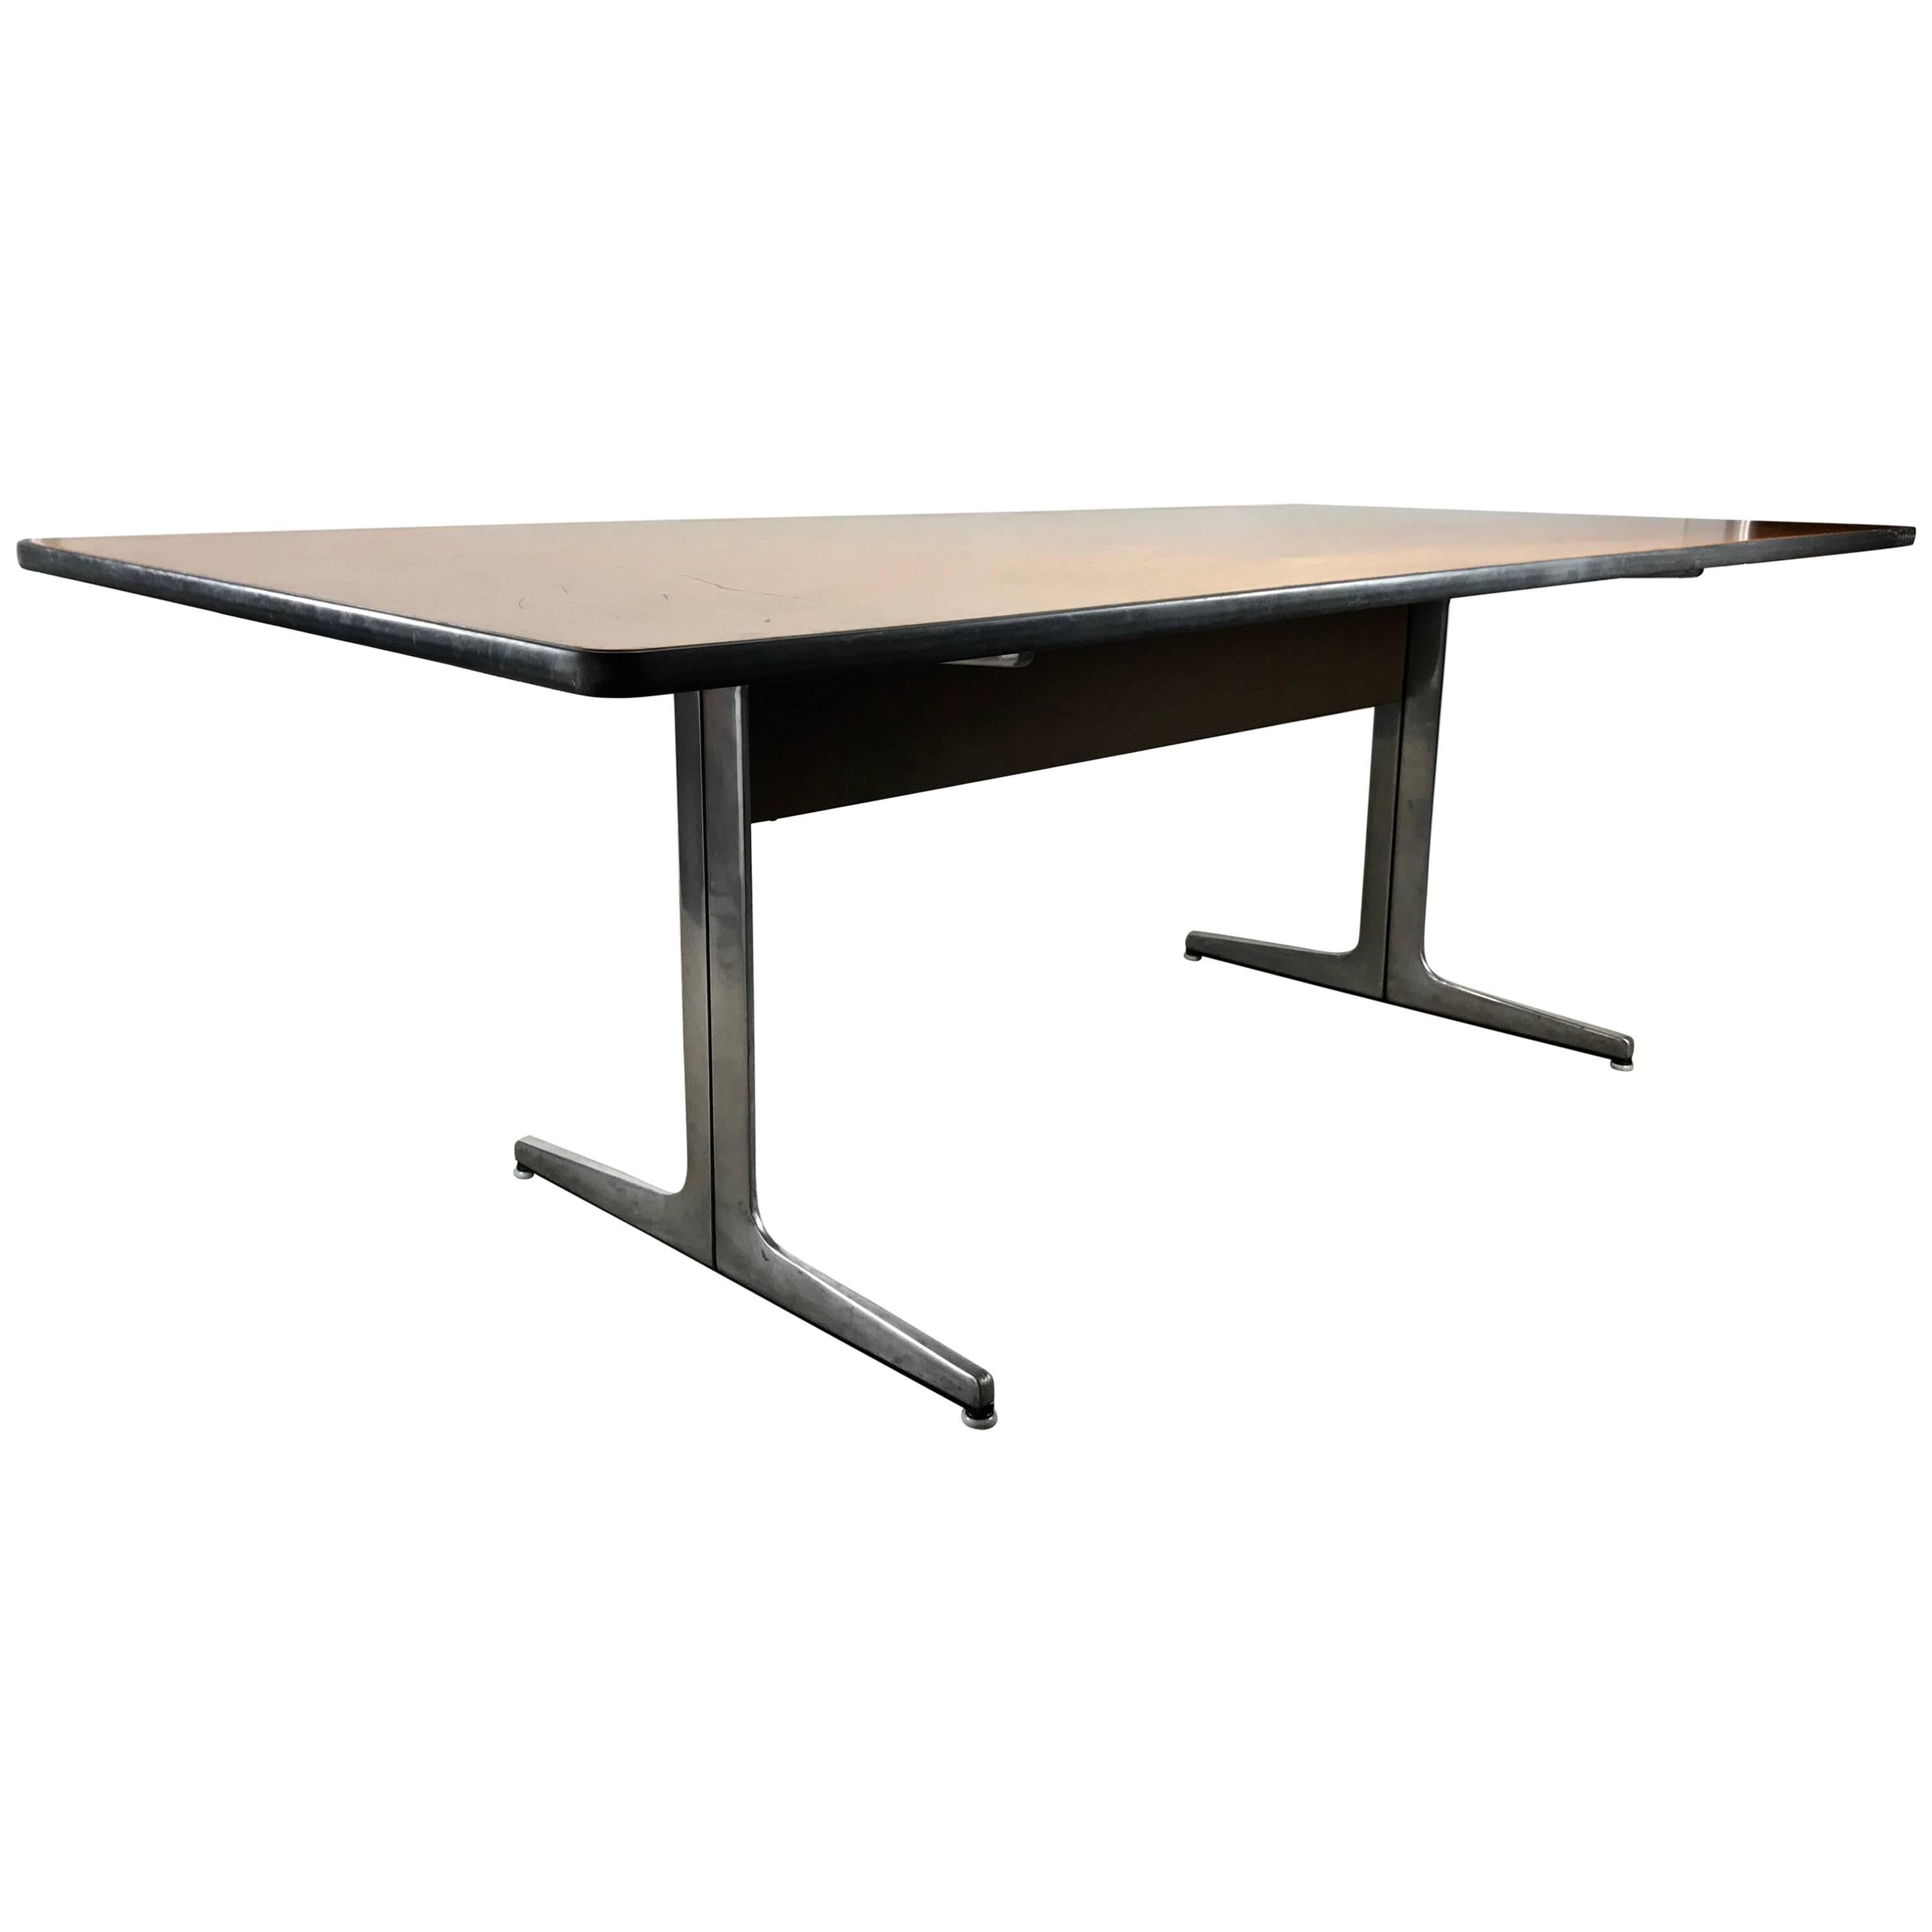 Elusive Modernist Action Office Desk or Table by George Nelson for Herman Miller